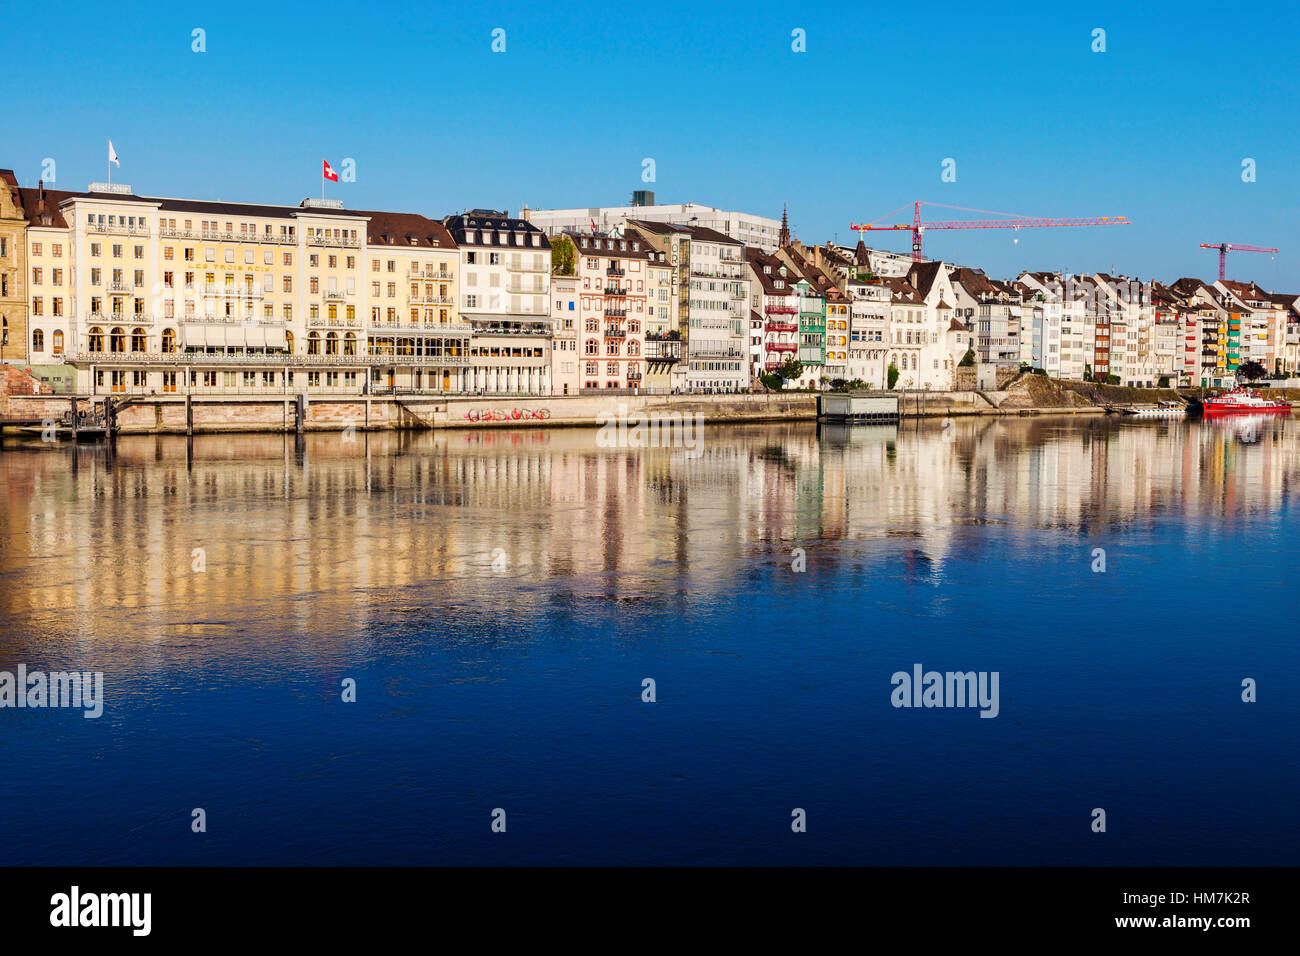 Switzerland, Basel, Basel-Stadt, Houses by Rhine River - Stock Image